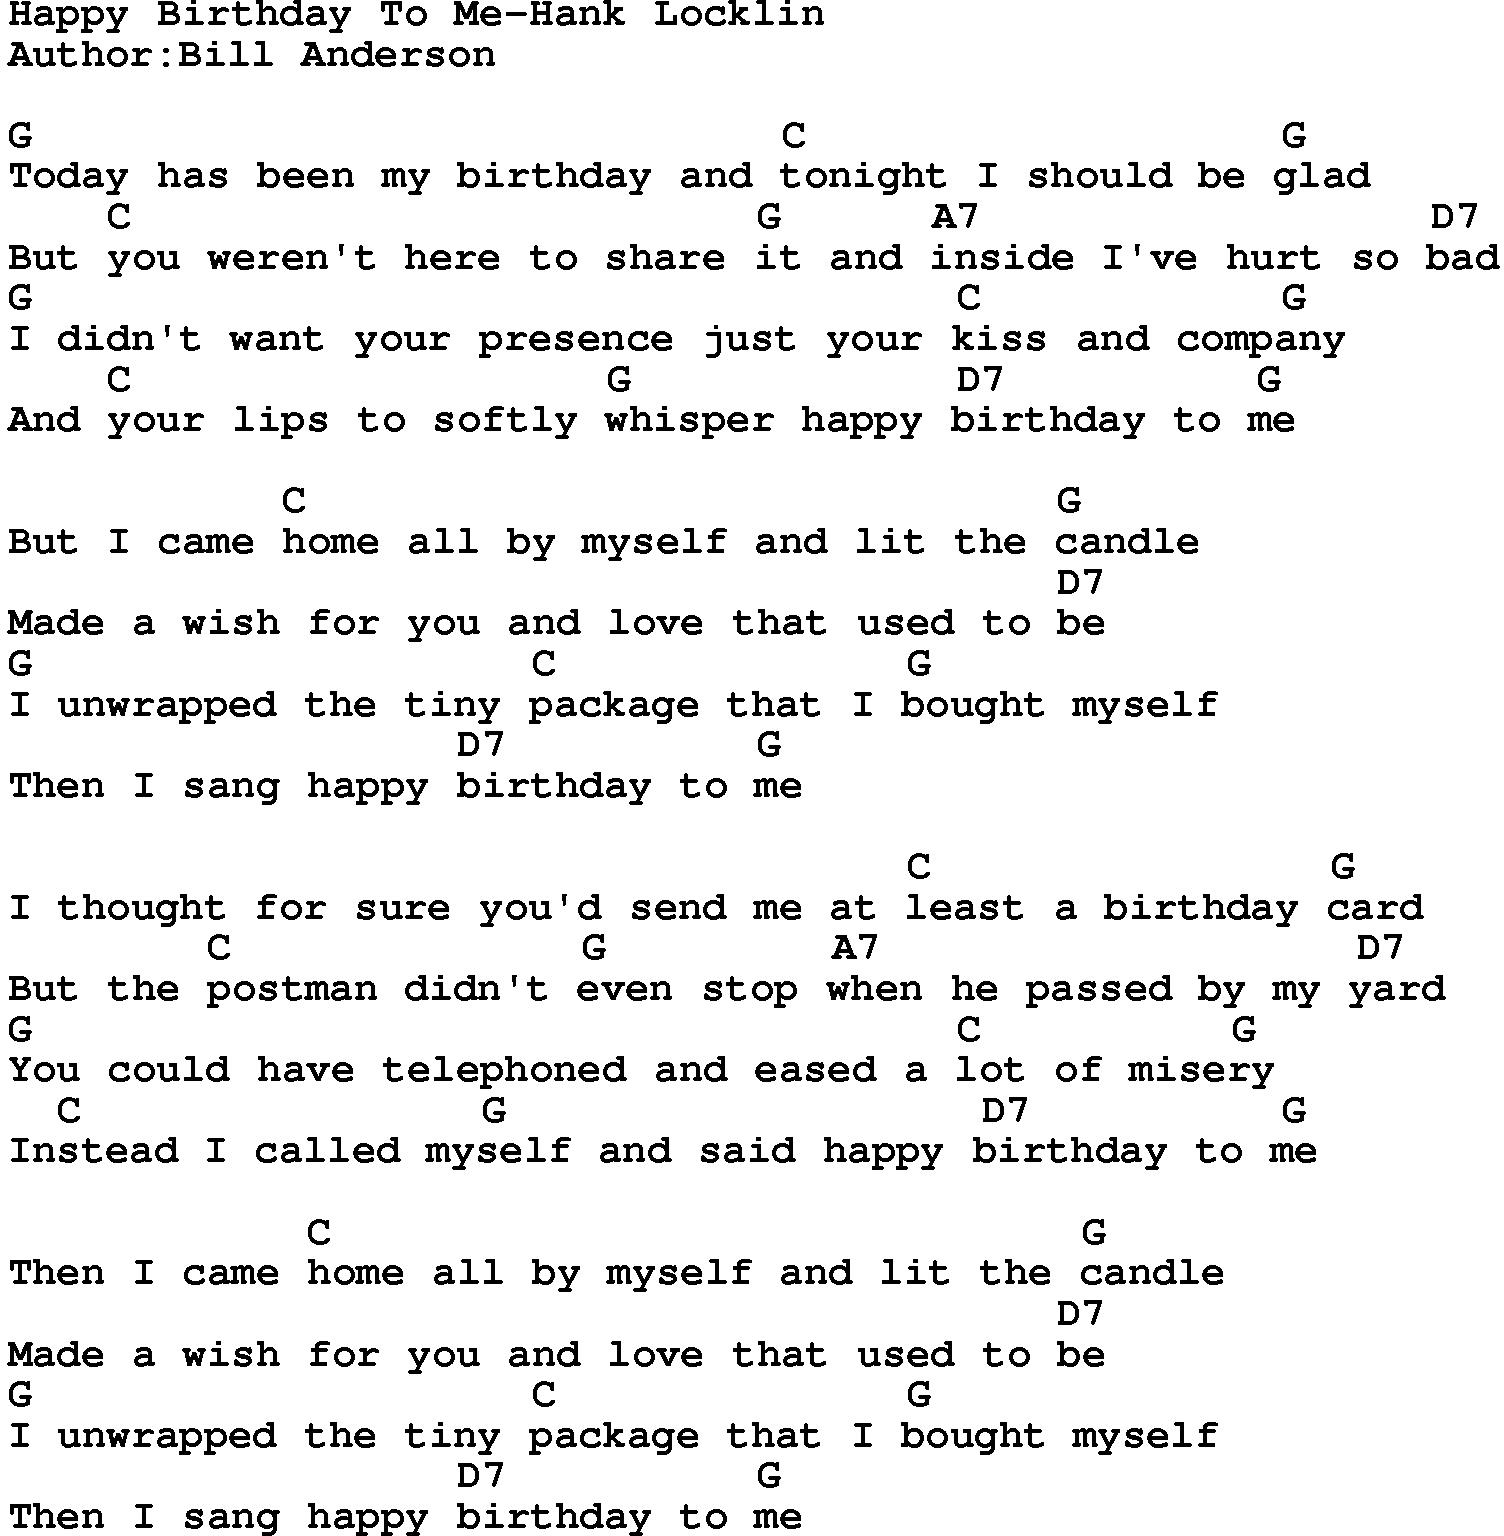 happy birthday lyrics and chords ; happy_birthday_to_me-hank_locklin